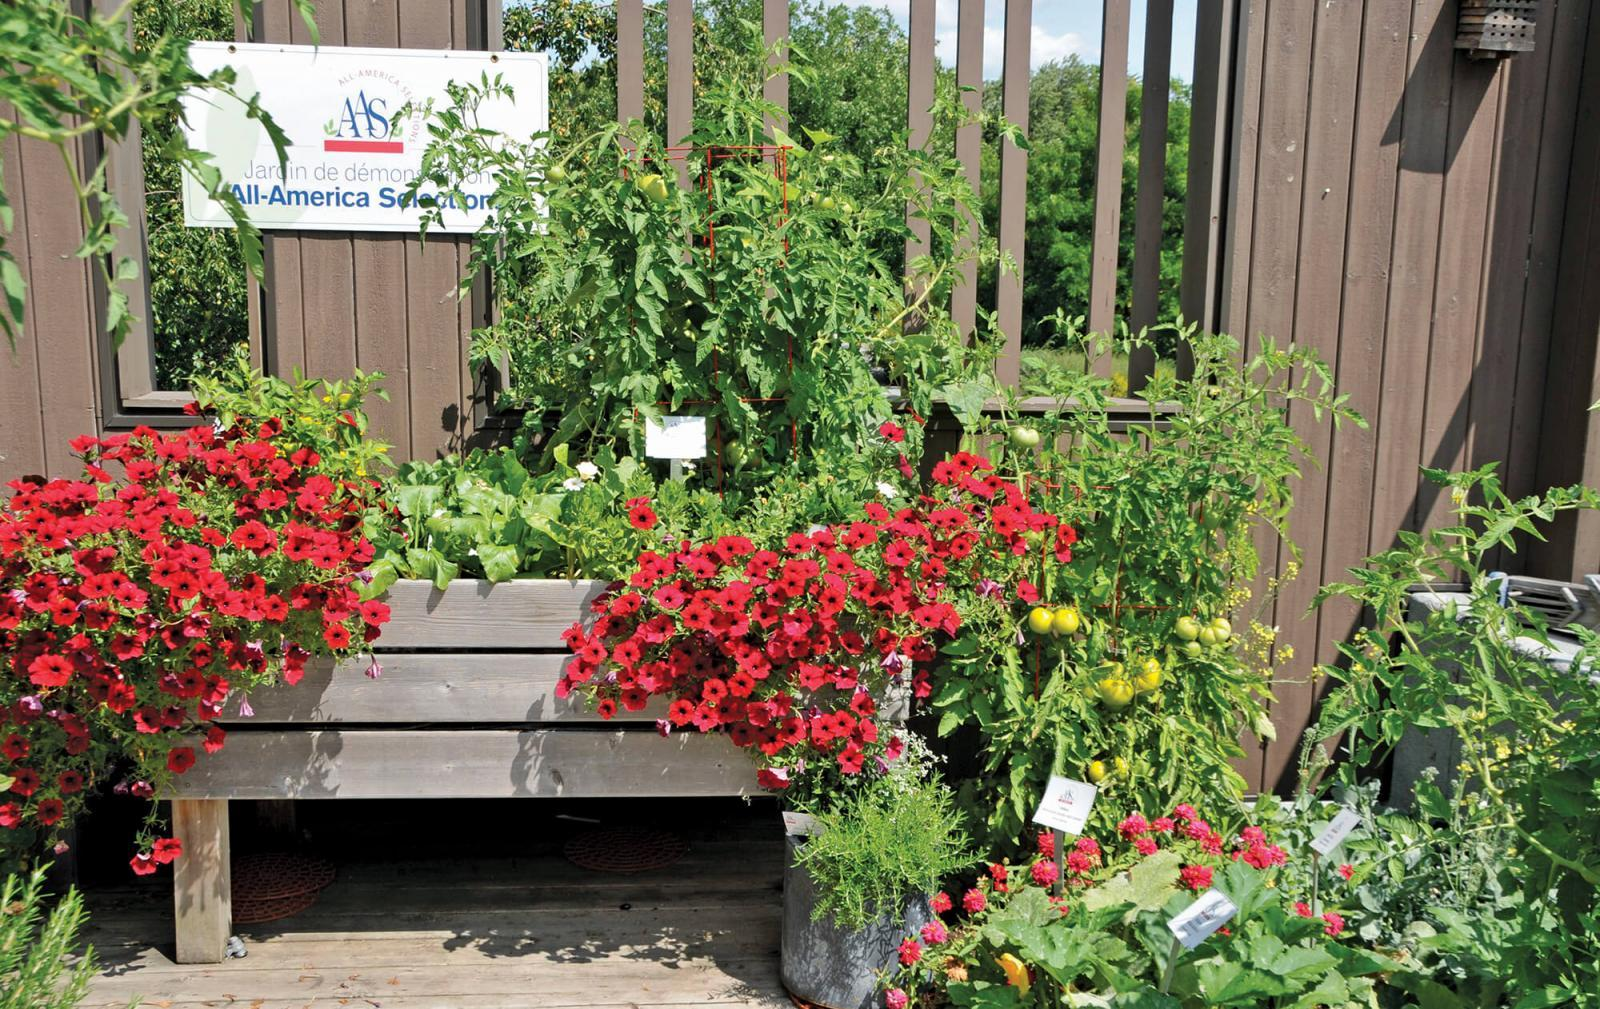 Canadian gardens feted by AAS